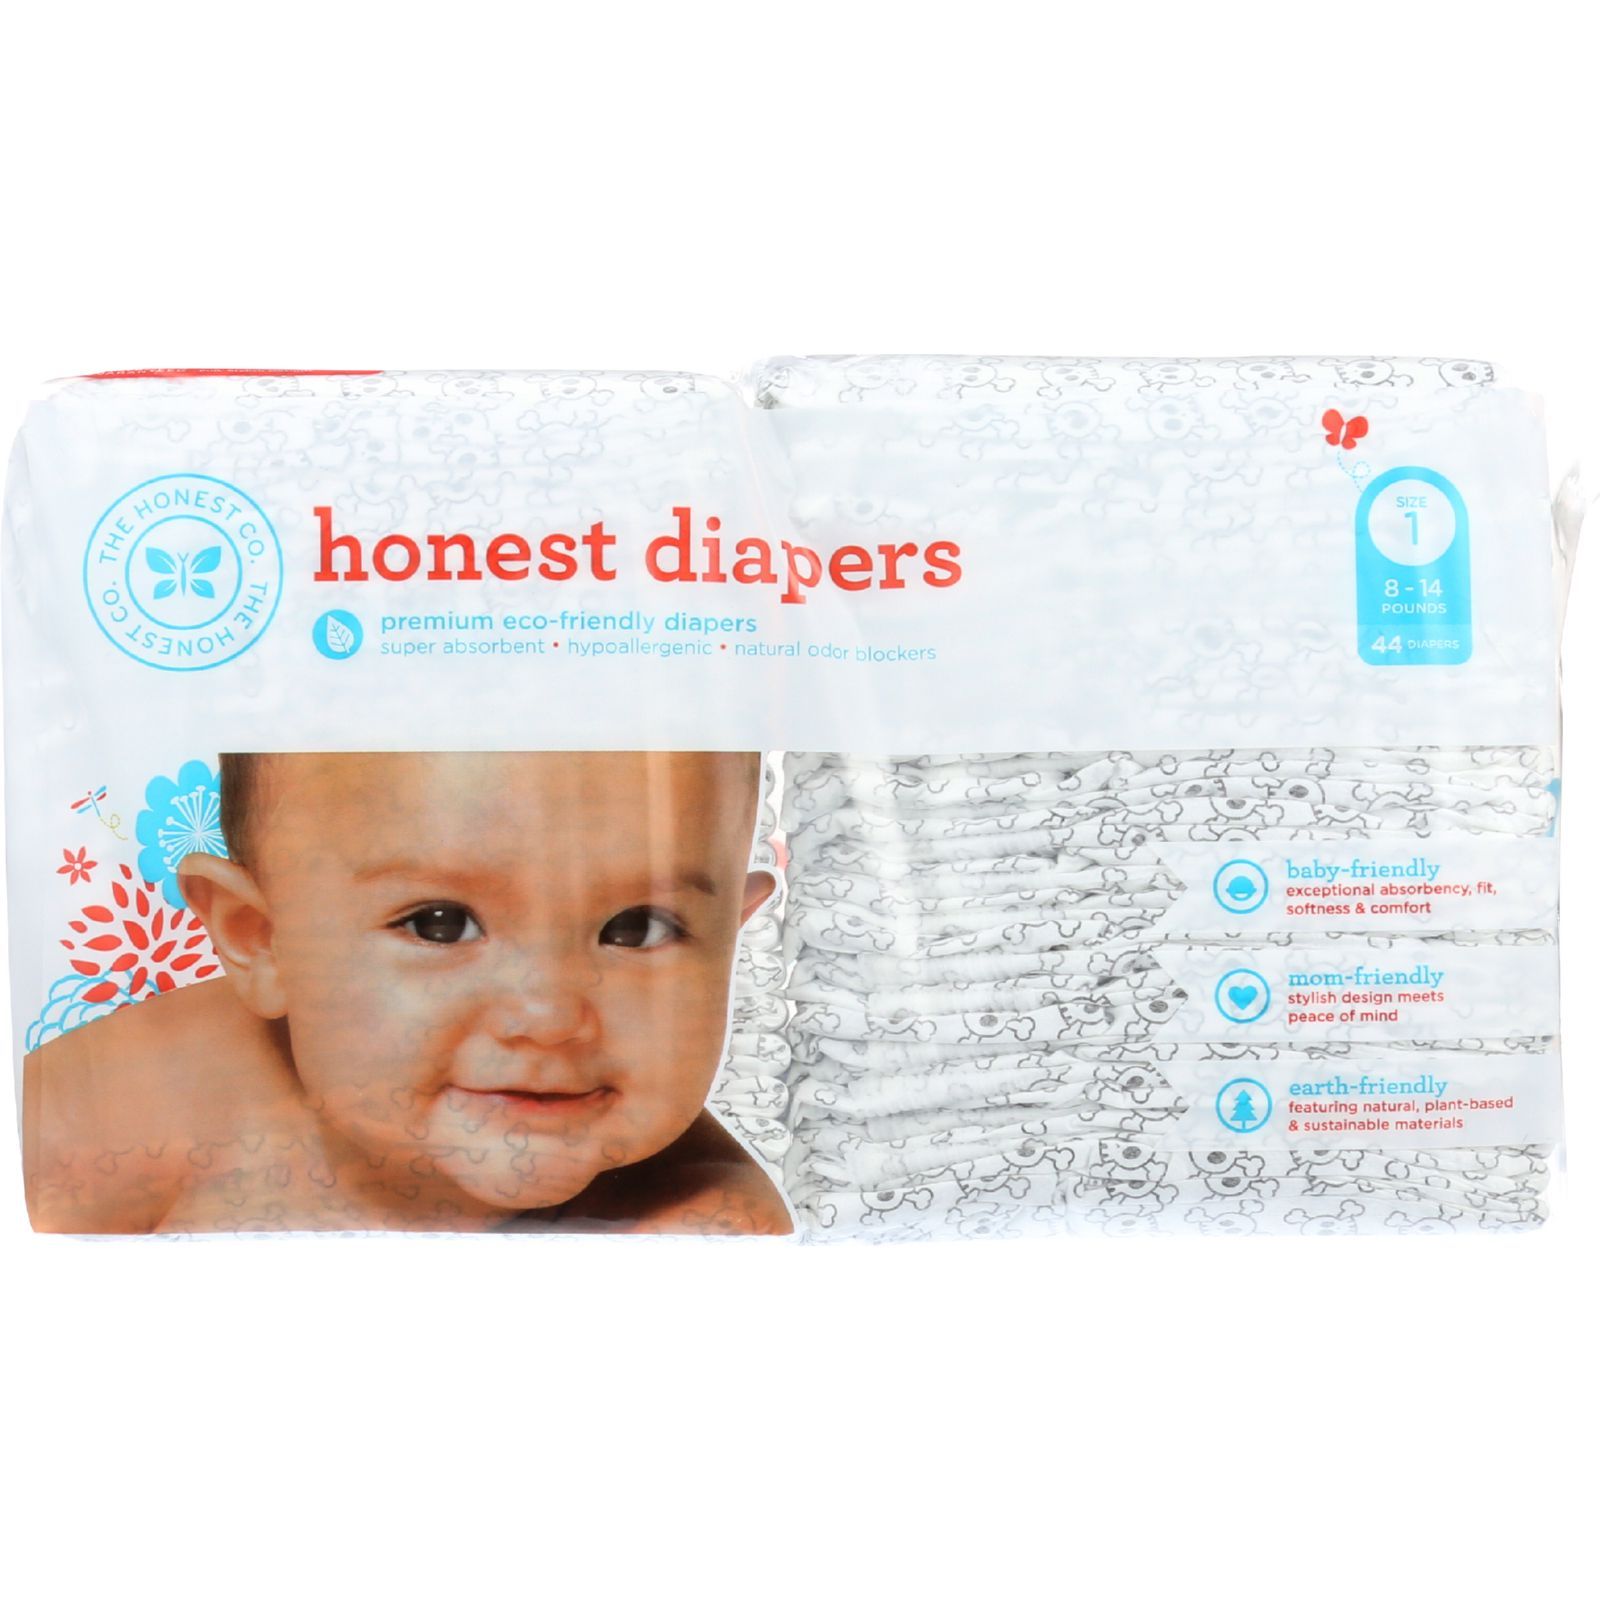 The Honest Company Diapers - Skulls - Size 1 - Babies 8 to 14 lbs - 44 count - 1 each